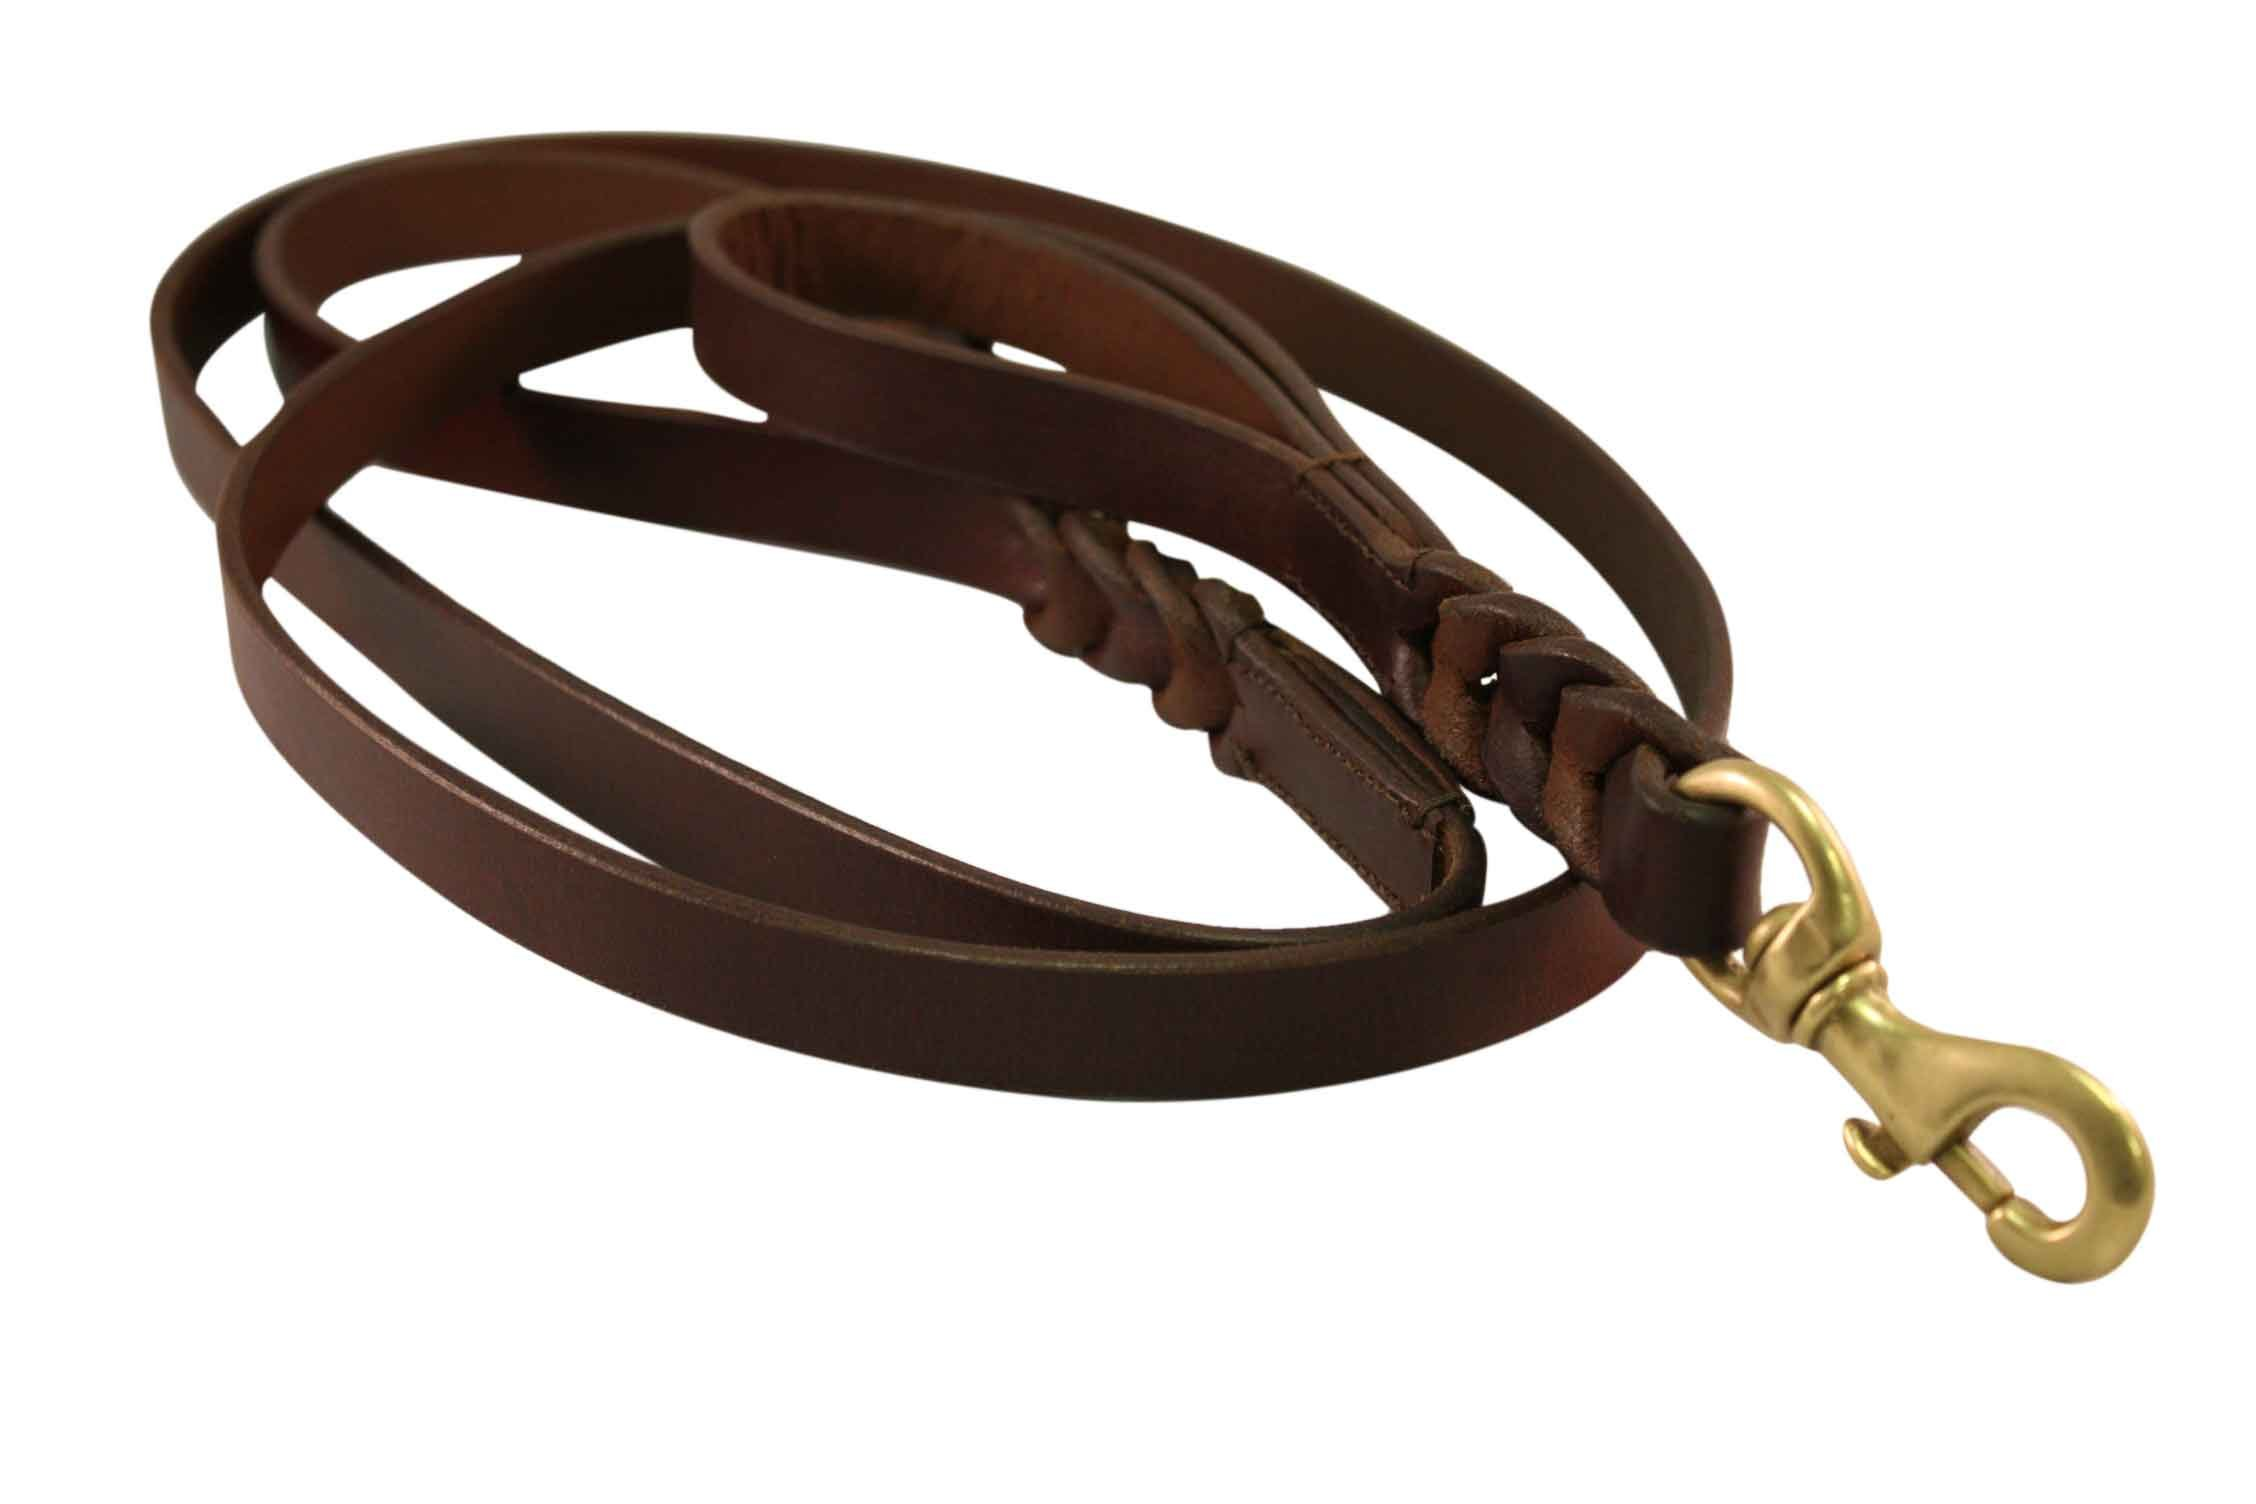 Leather Braided Leash Double Handle, 6' x 1'', Brown, Oiled Leather. Extra handle allows for traffic control